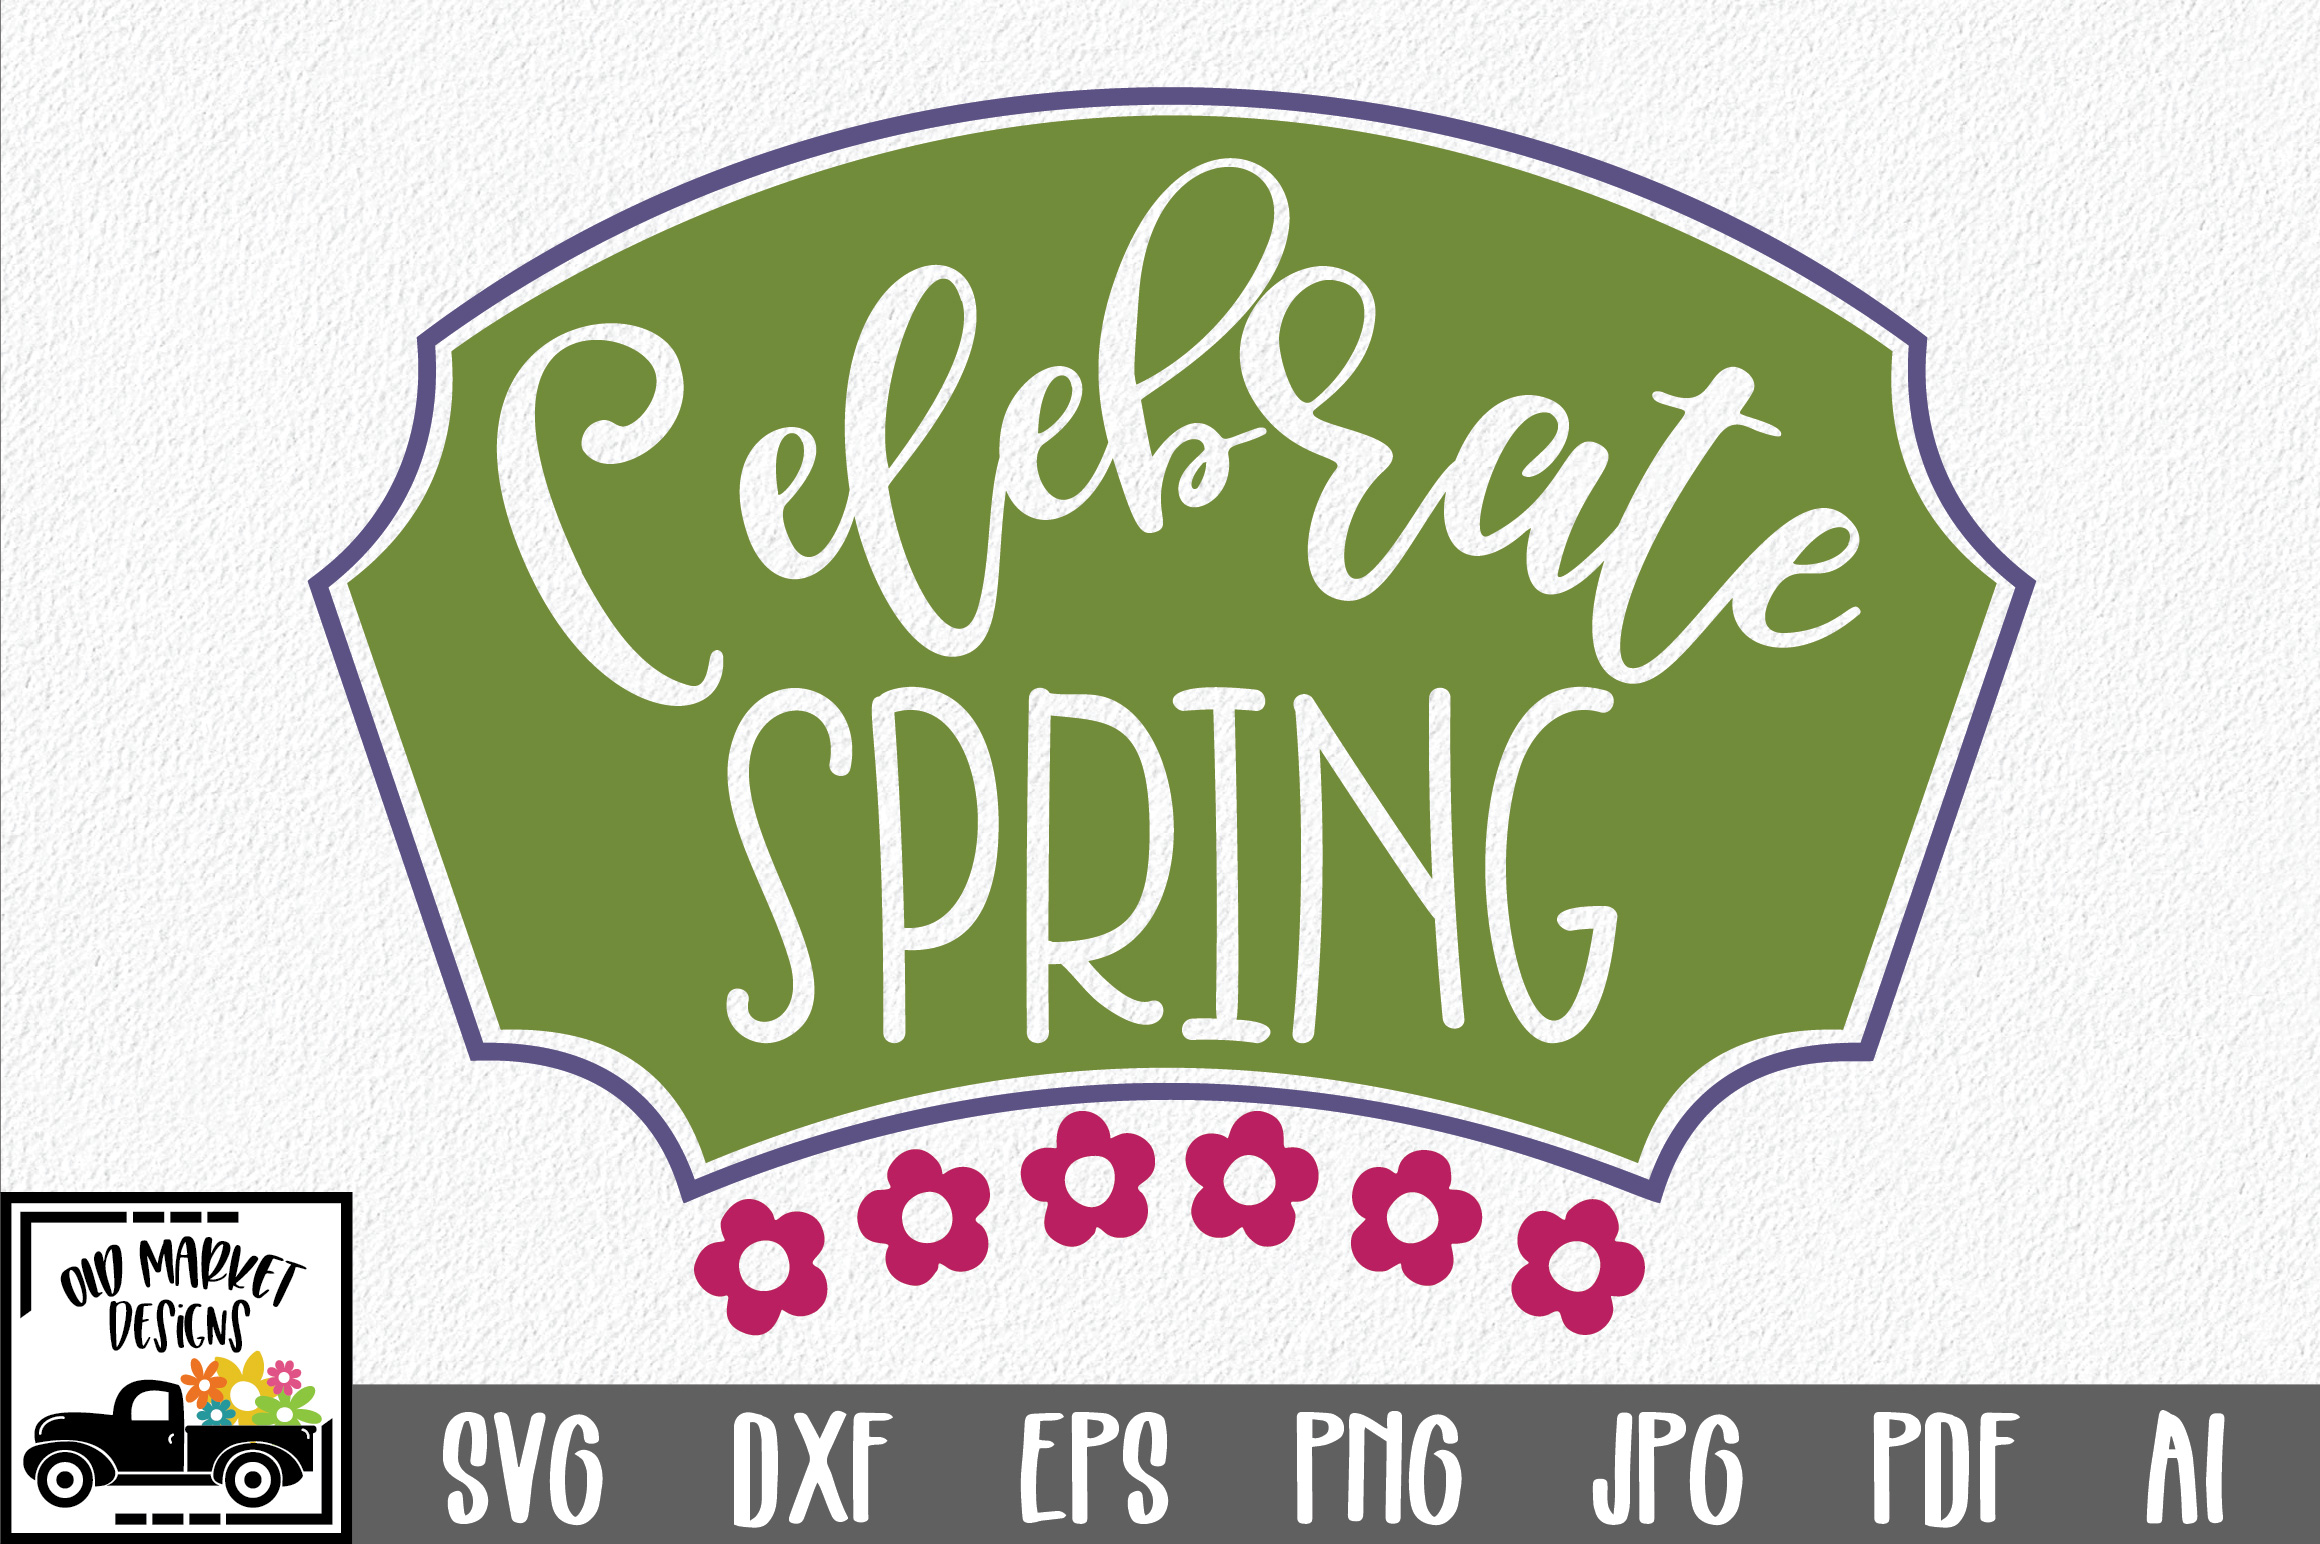 Download Free Celebrate Spring Svg Cut File Graphic By Oldmarketdesigns for Cricut Explore, Silhouette and other cutting machines.